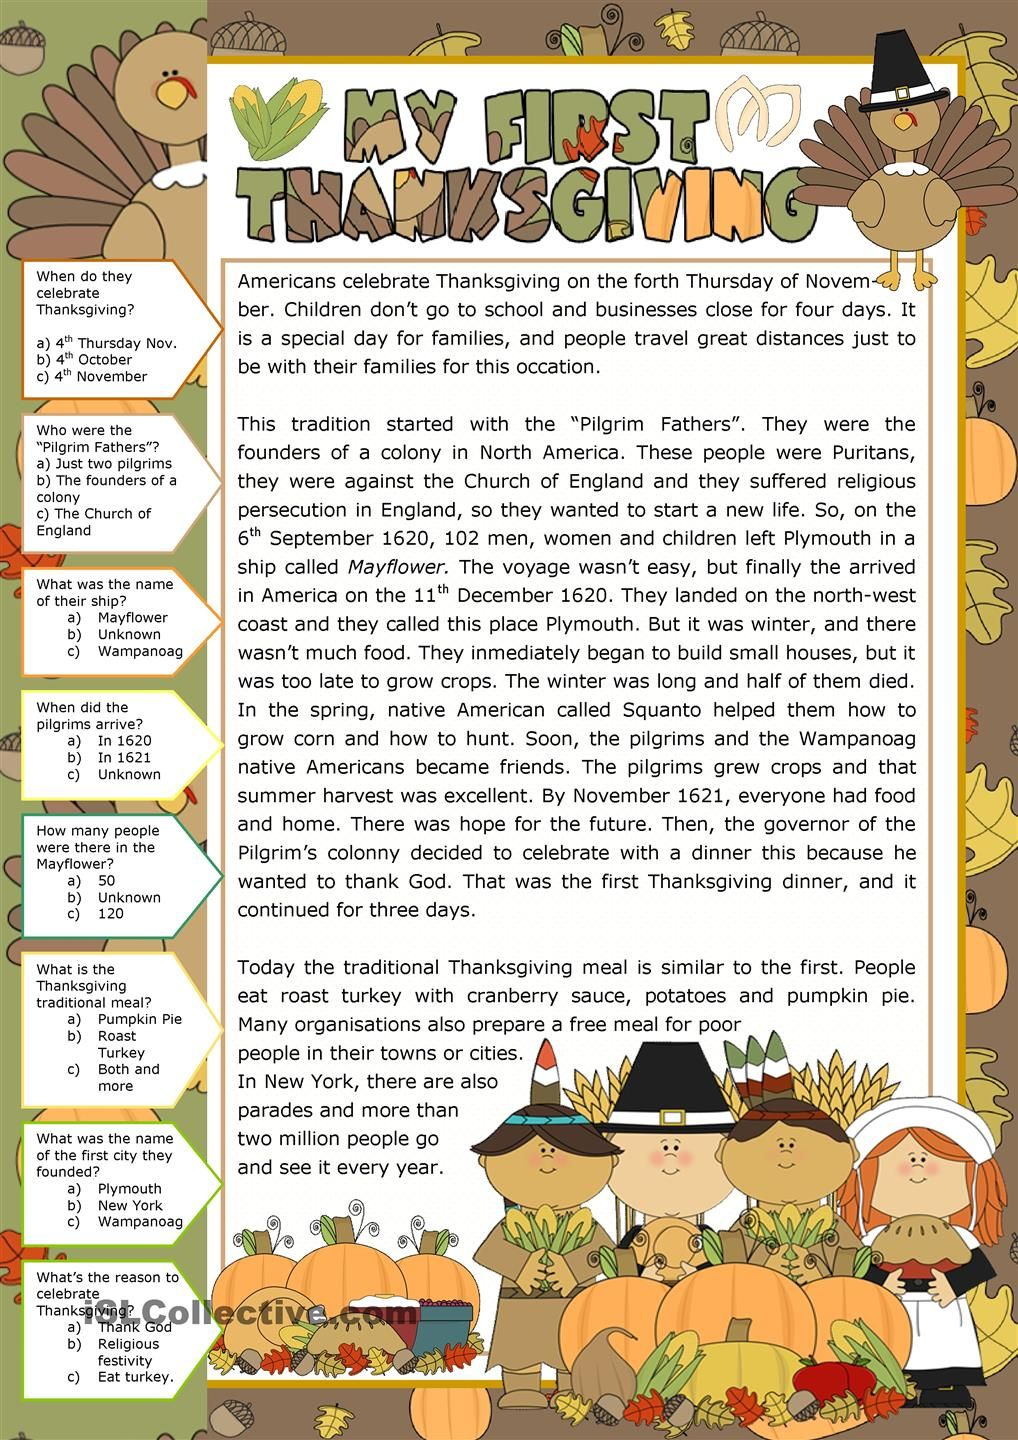 Worksheets Free Reading Comprehension Worksheets For Middle School thanksgiving reading comprehension school pinterest worksheets for middle free math pizzantine